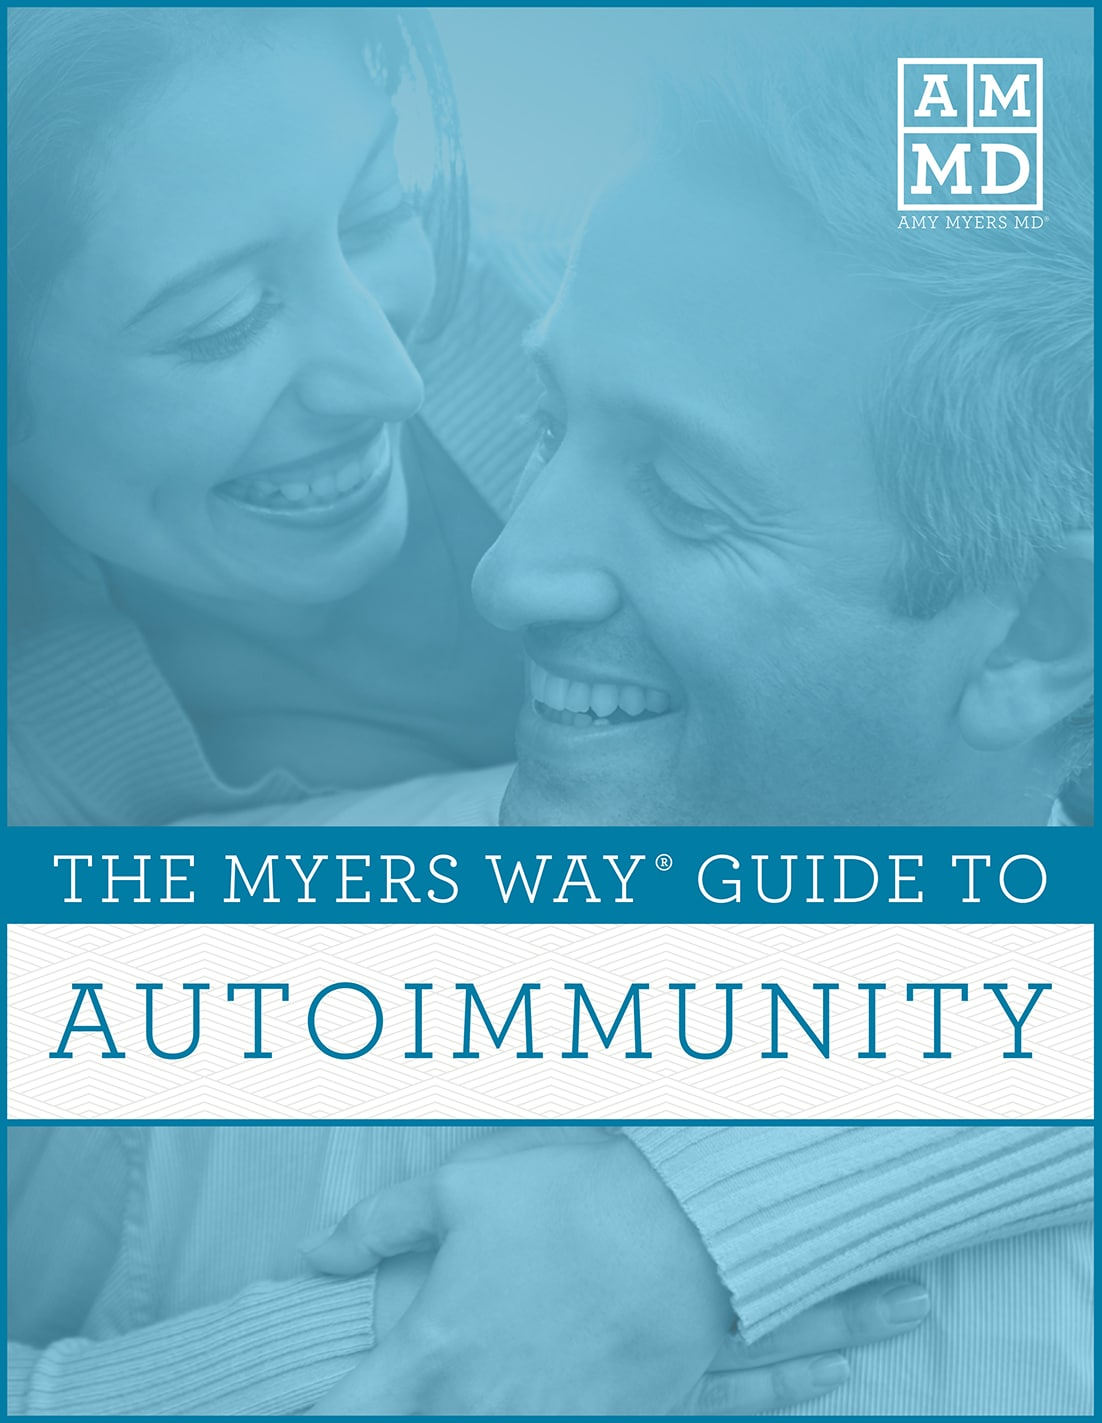 The Myers Way Guide to Autoimmunity